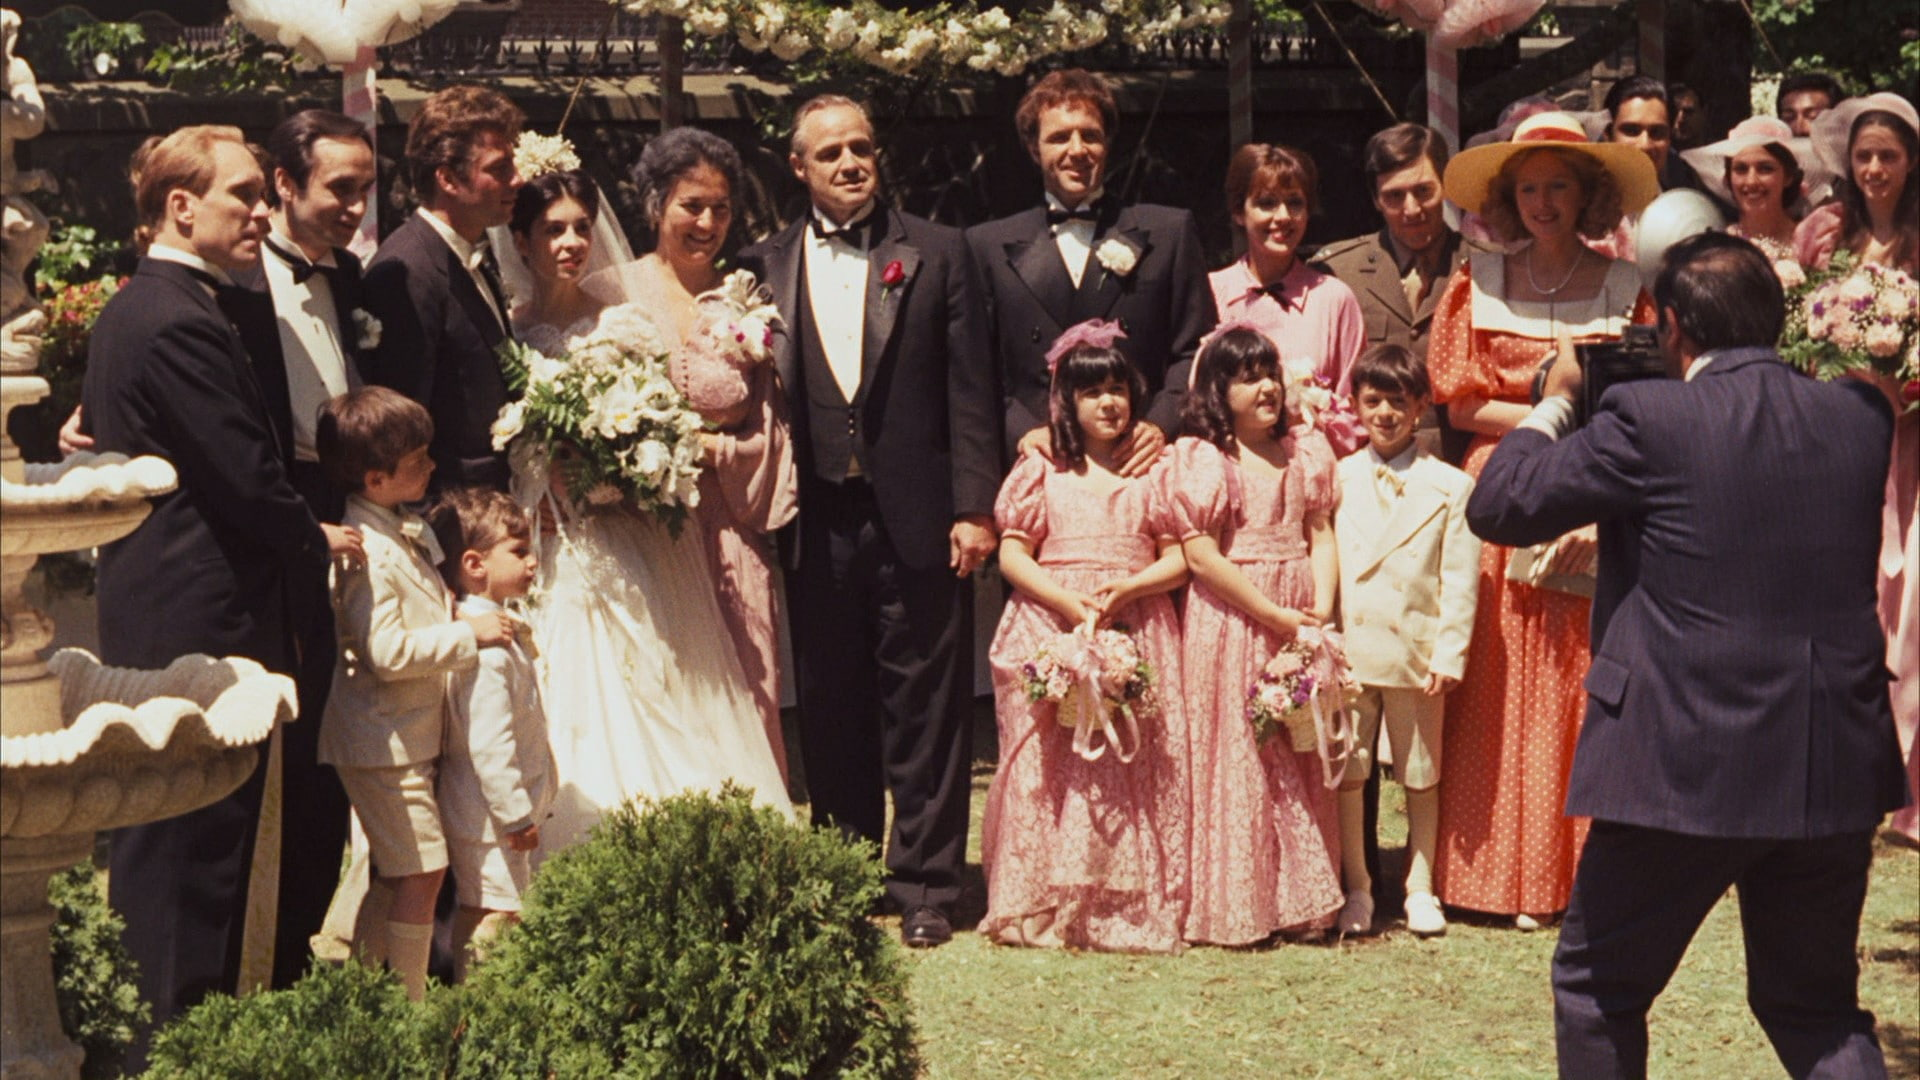 Family The Godfather - HD Wallpaper